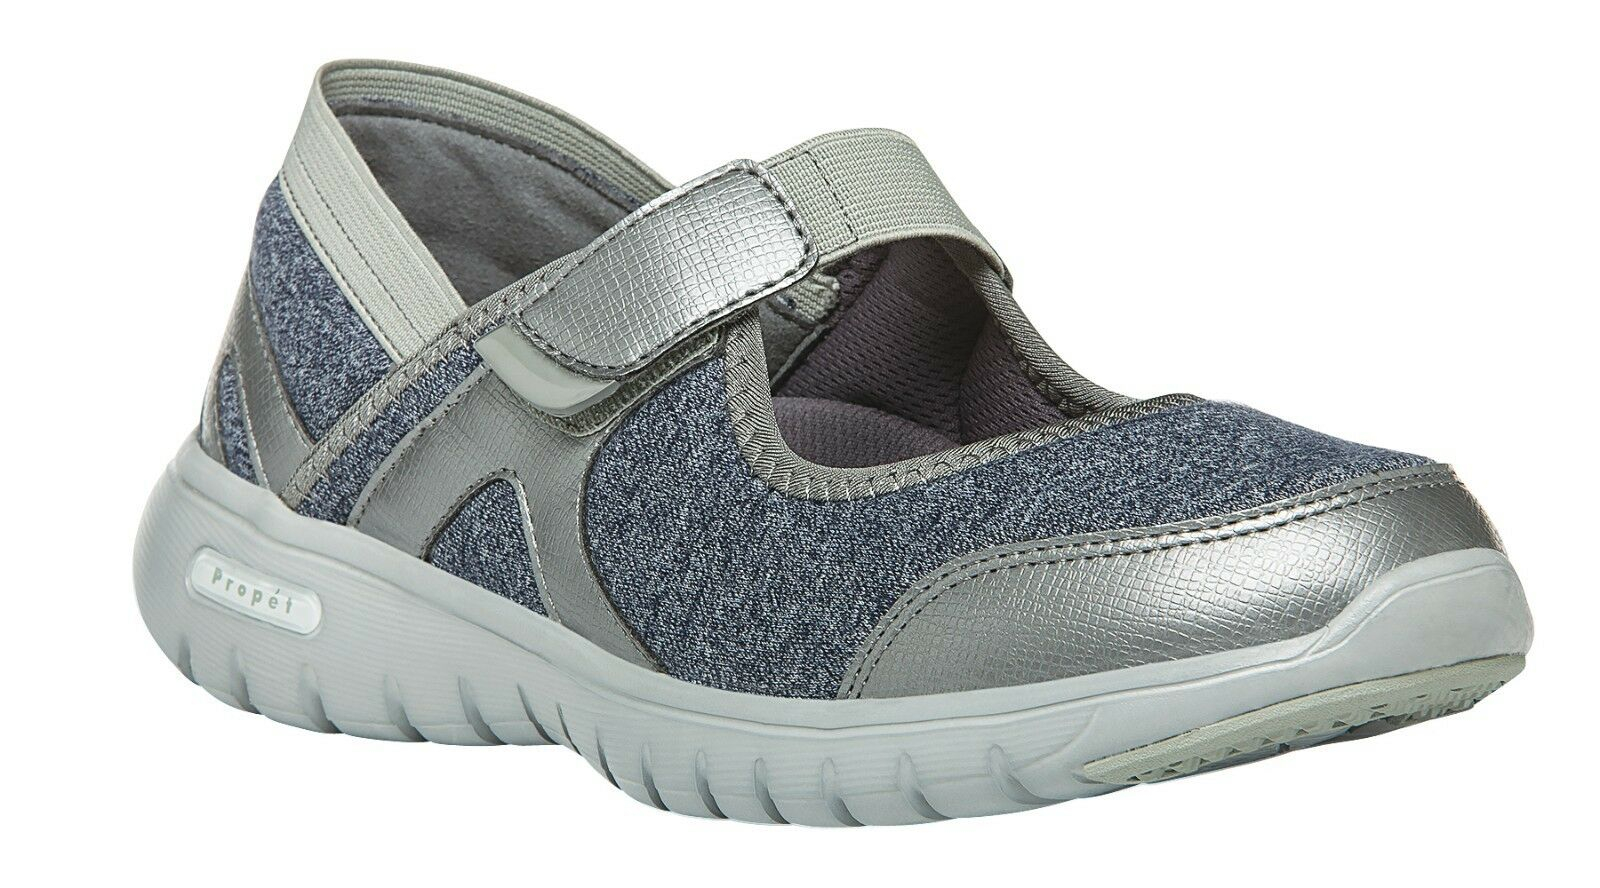 Propet Jane Damens W3264 Leona Walking Schuhes Mary Jane Propet Styles good for Bunion fdf5f7